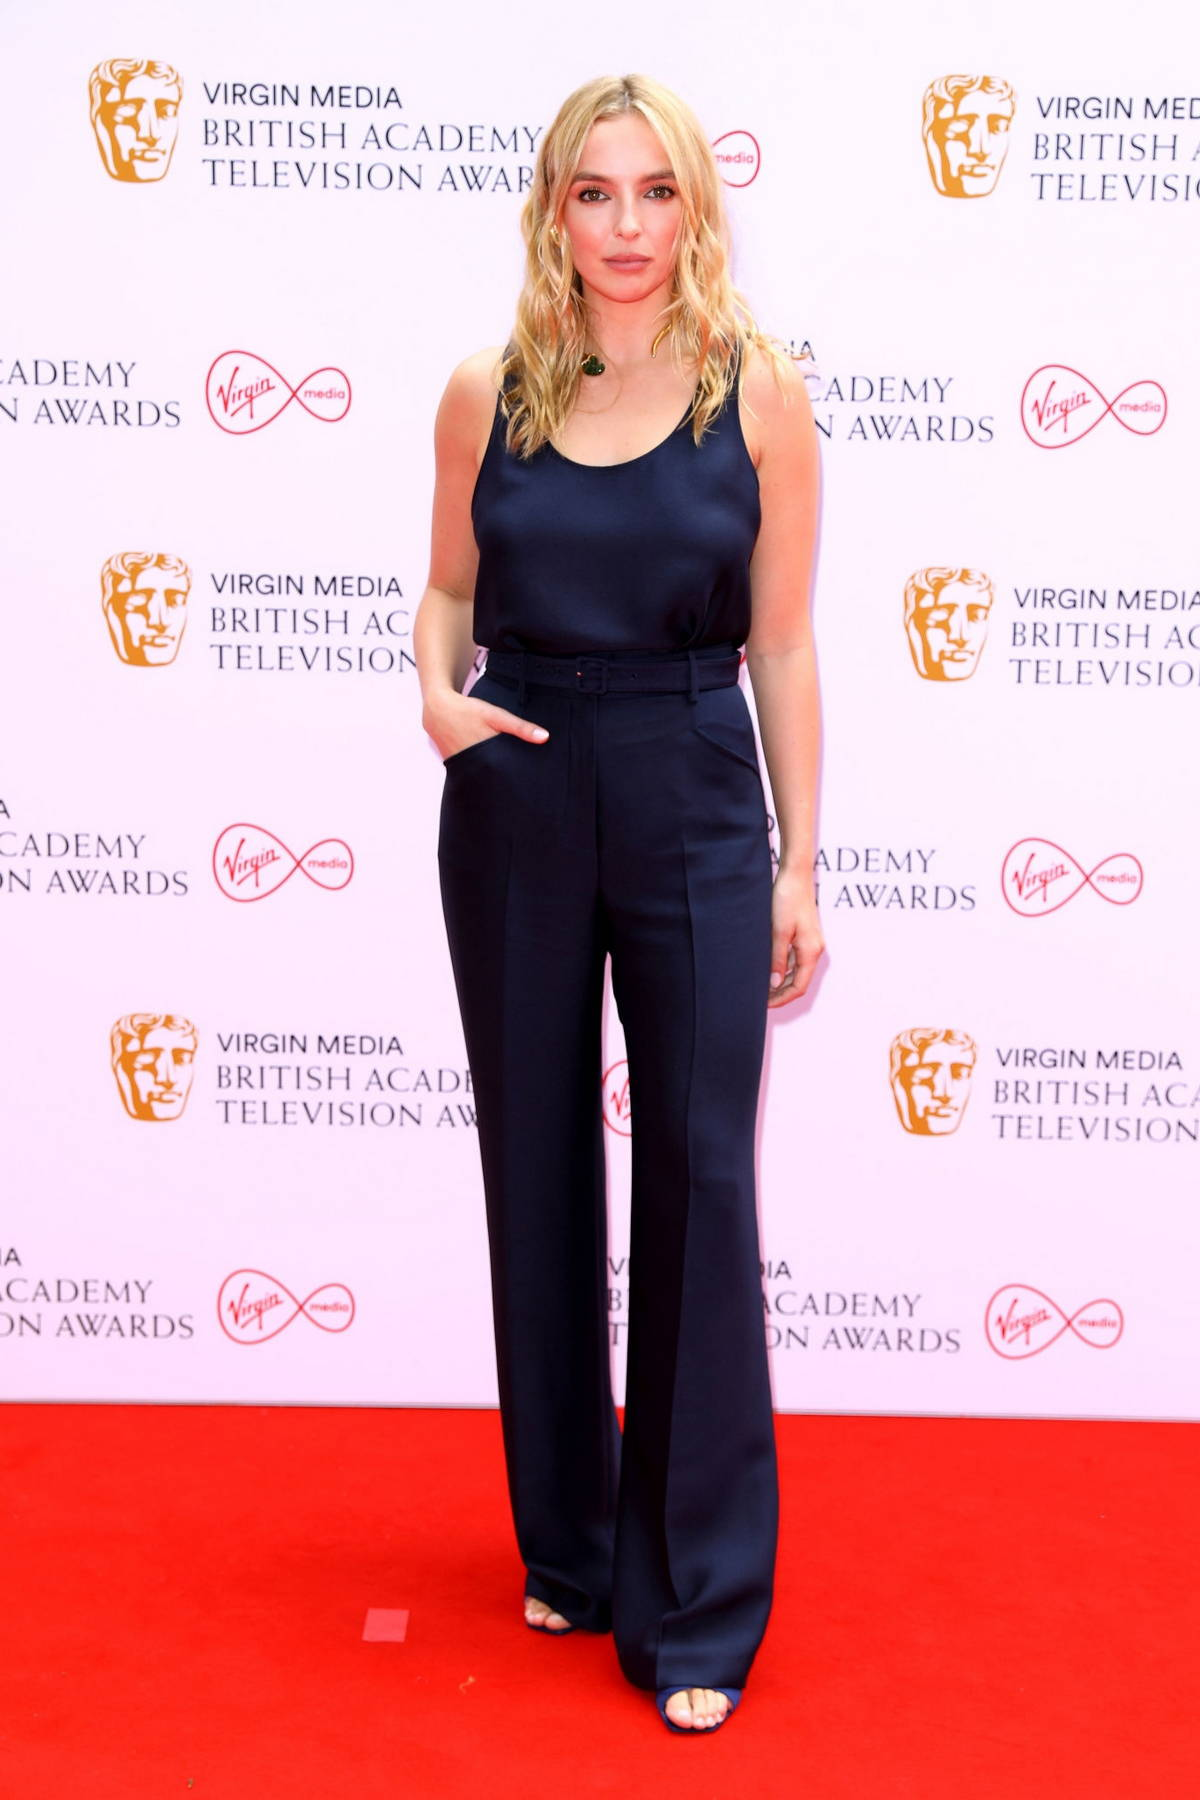 Jodie Comer attends the Virgin Media British Academy Television Awards 2021 at Television Centre in London, UK